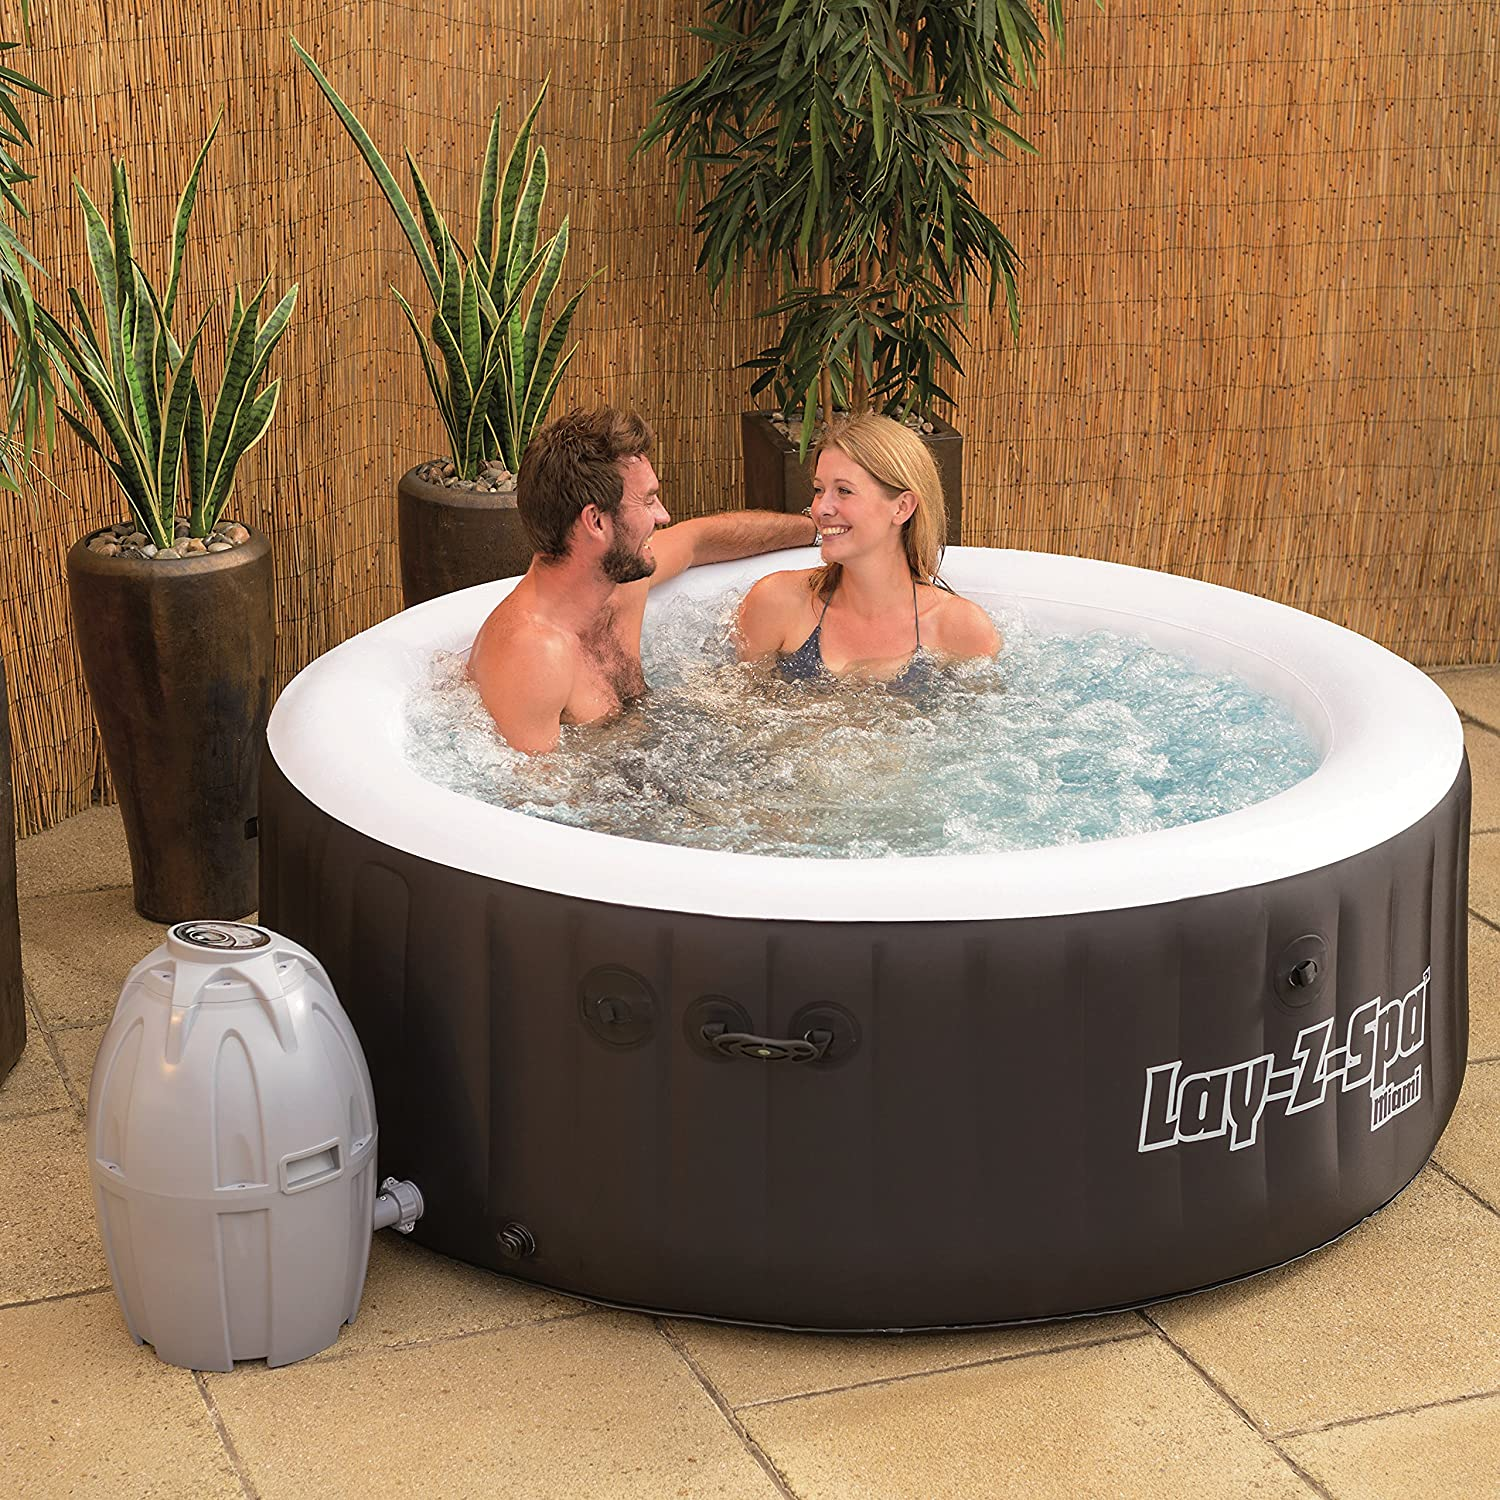 The Best Outdoor Hot Tubs For Your Garden: Reviews & Buying Guide 4